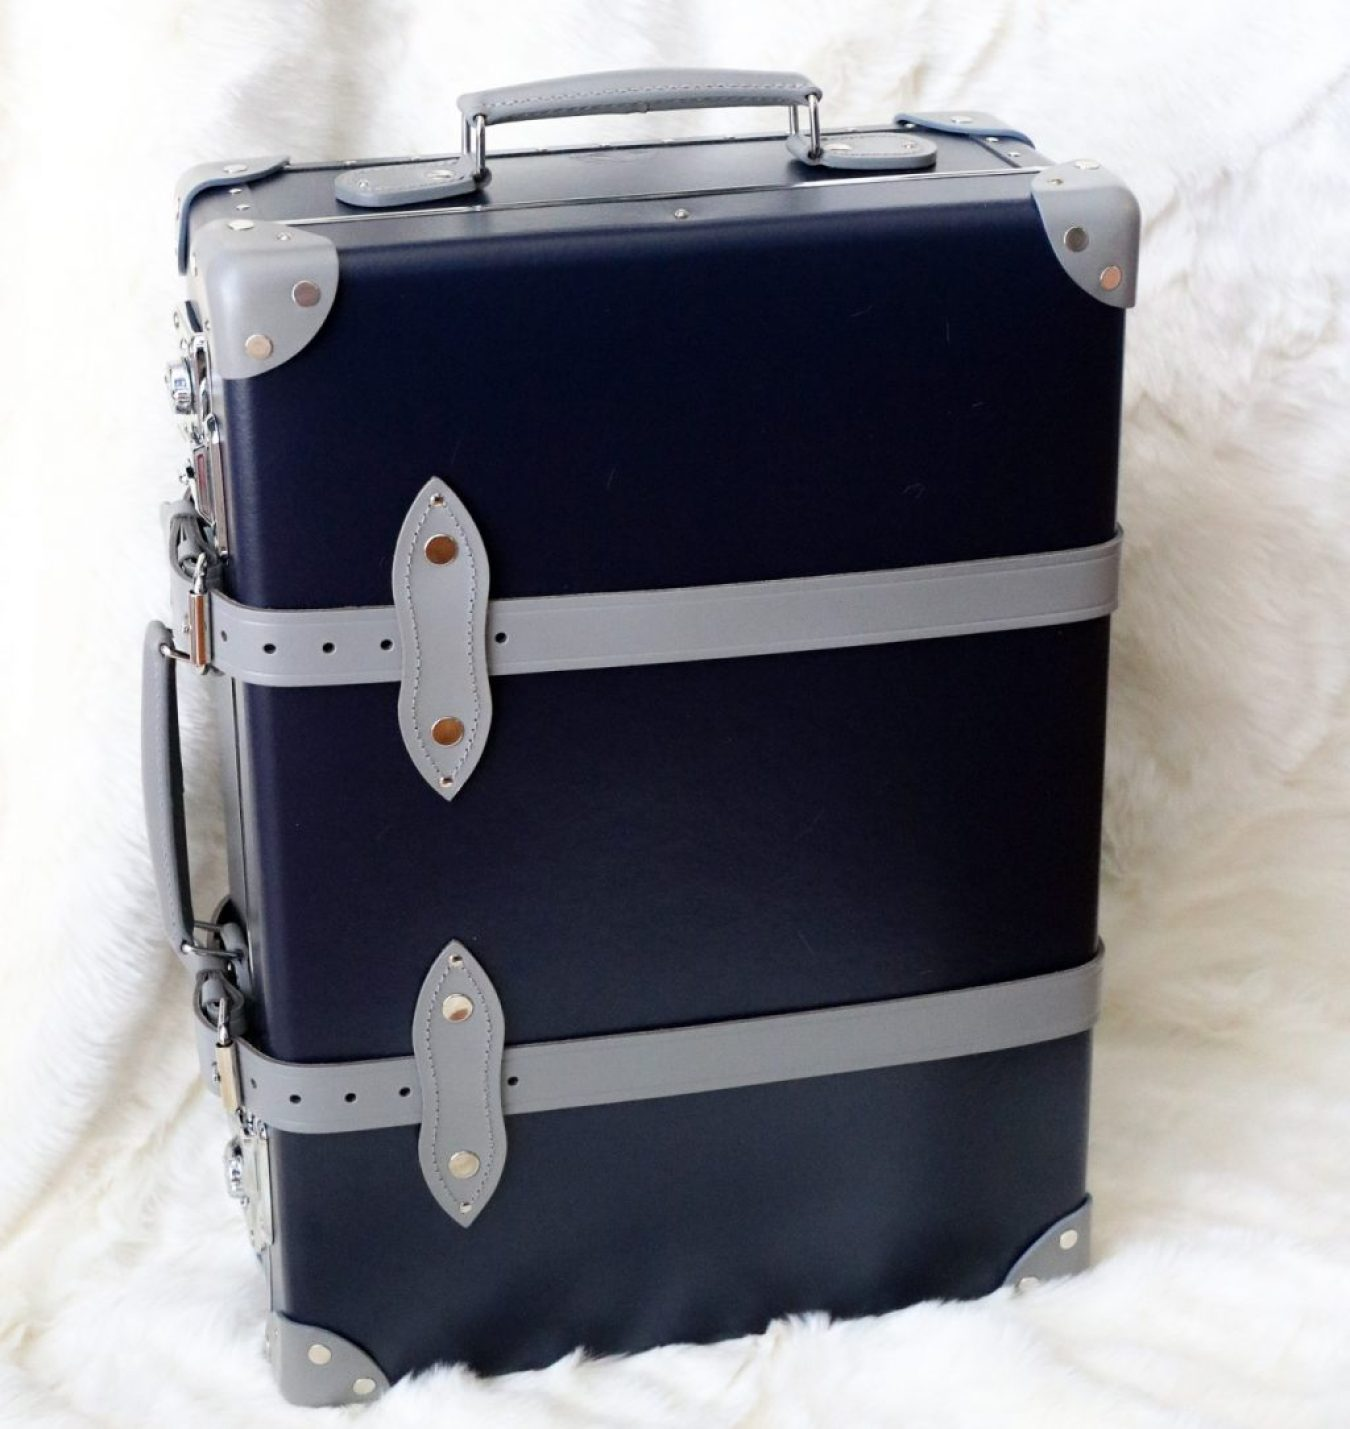 cc1916430d1 Globe Trotter Luggage: The Perfect Carry On Trolley Case